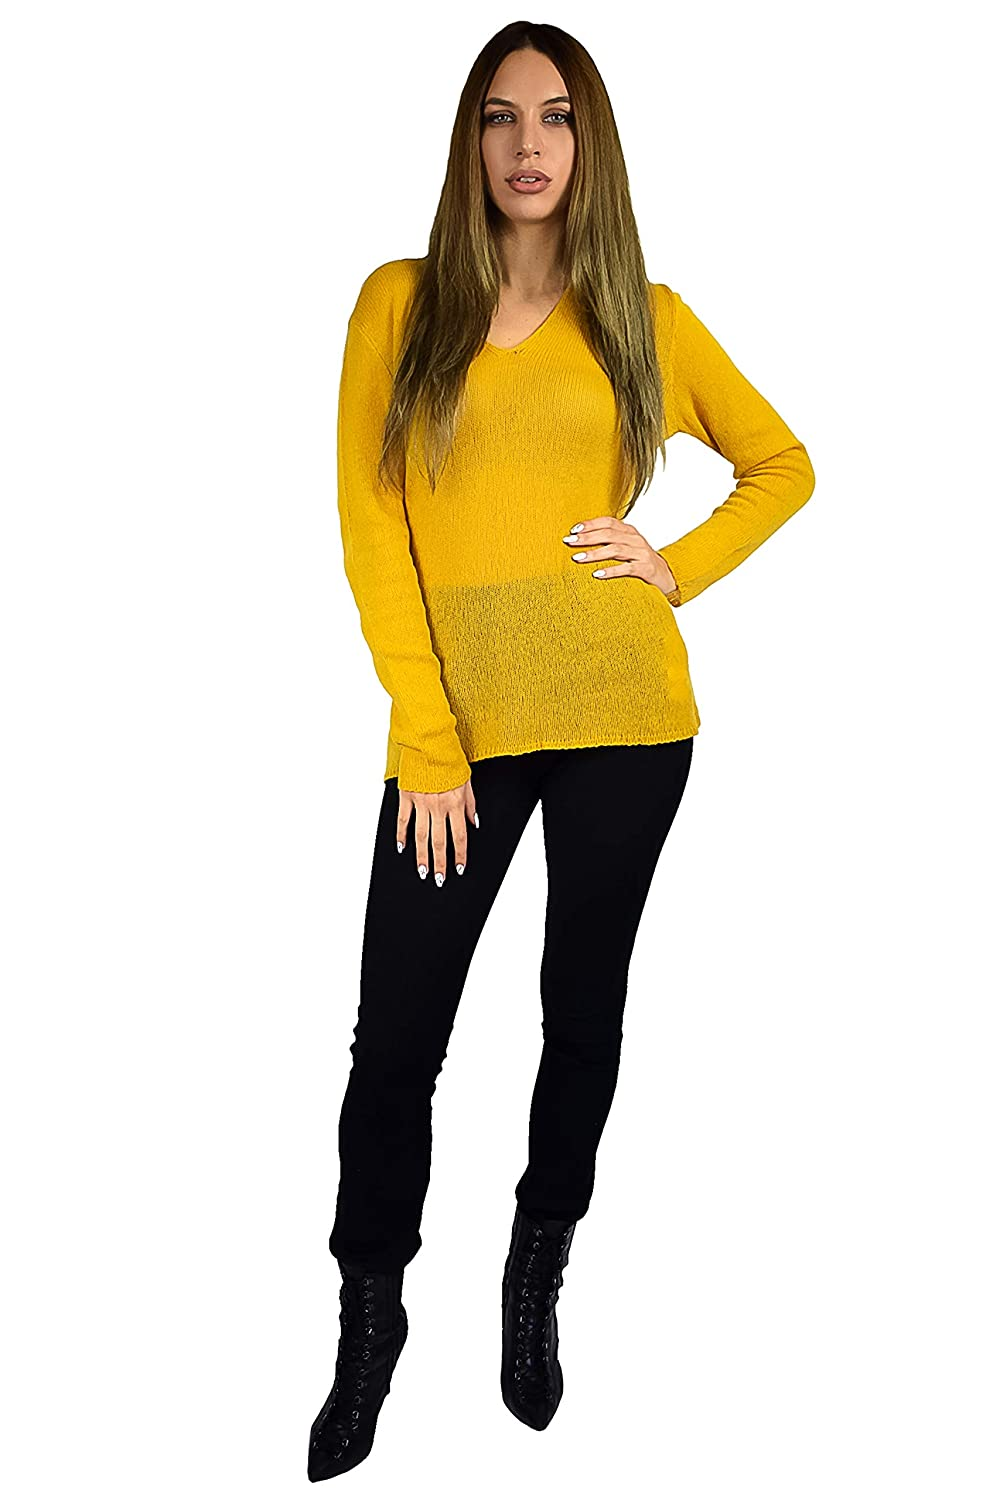 Mustard Cashmere Boutique  Women's Lightweight VNeck Sweater in 100% Pure Cashmere (2 colors, Sizes  S M L XL)